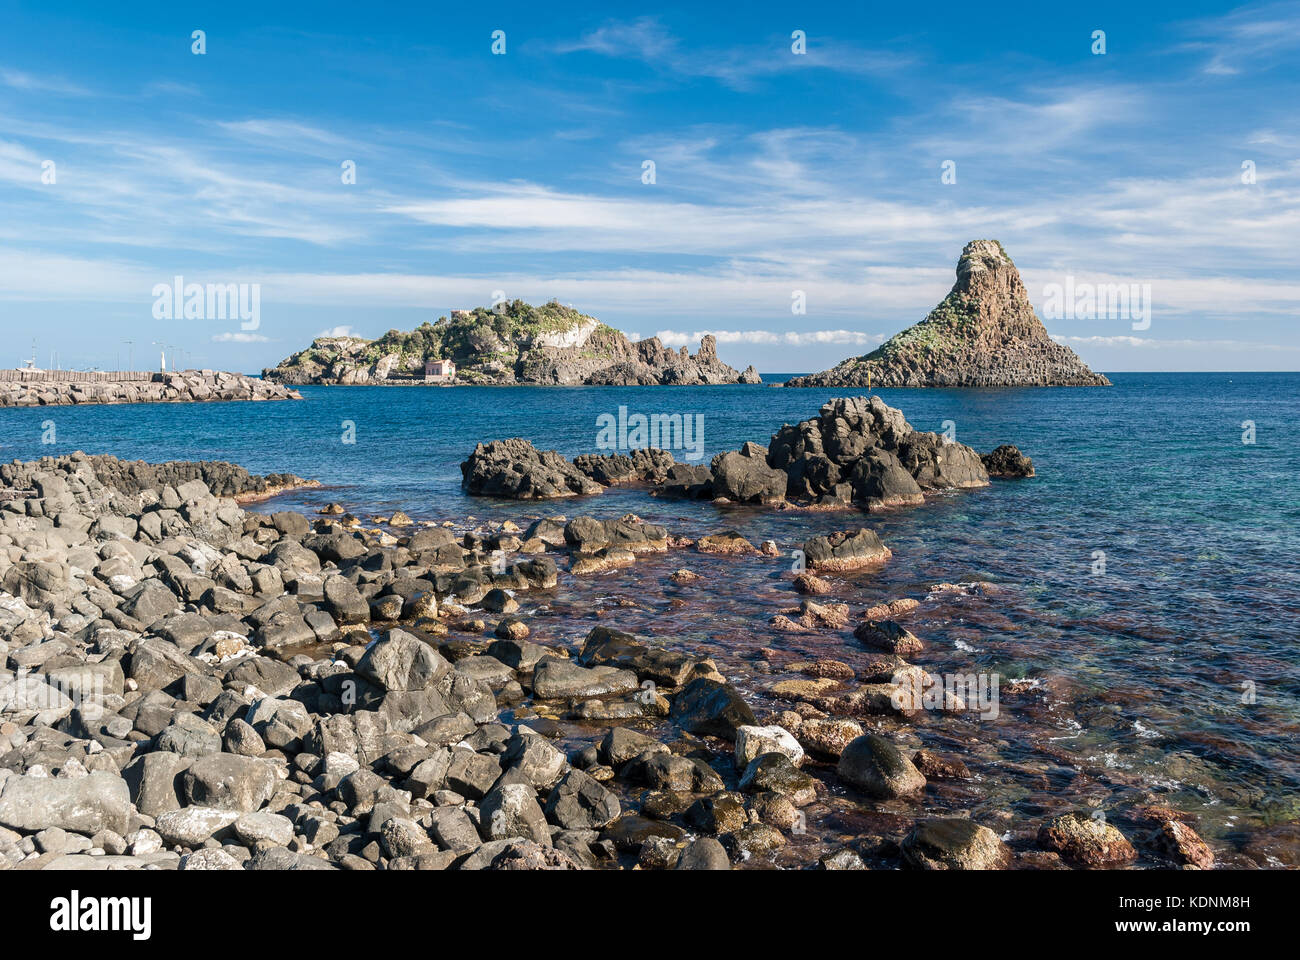 Island Lachea and a sea stack, geological features in Acitrezza (Sicily) - Stock Image